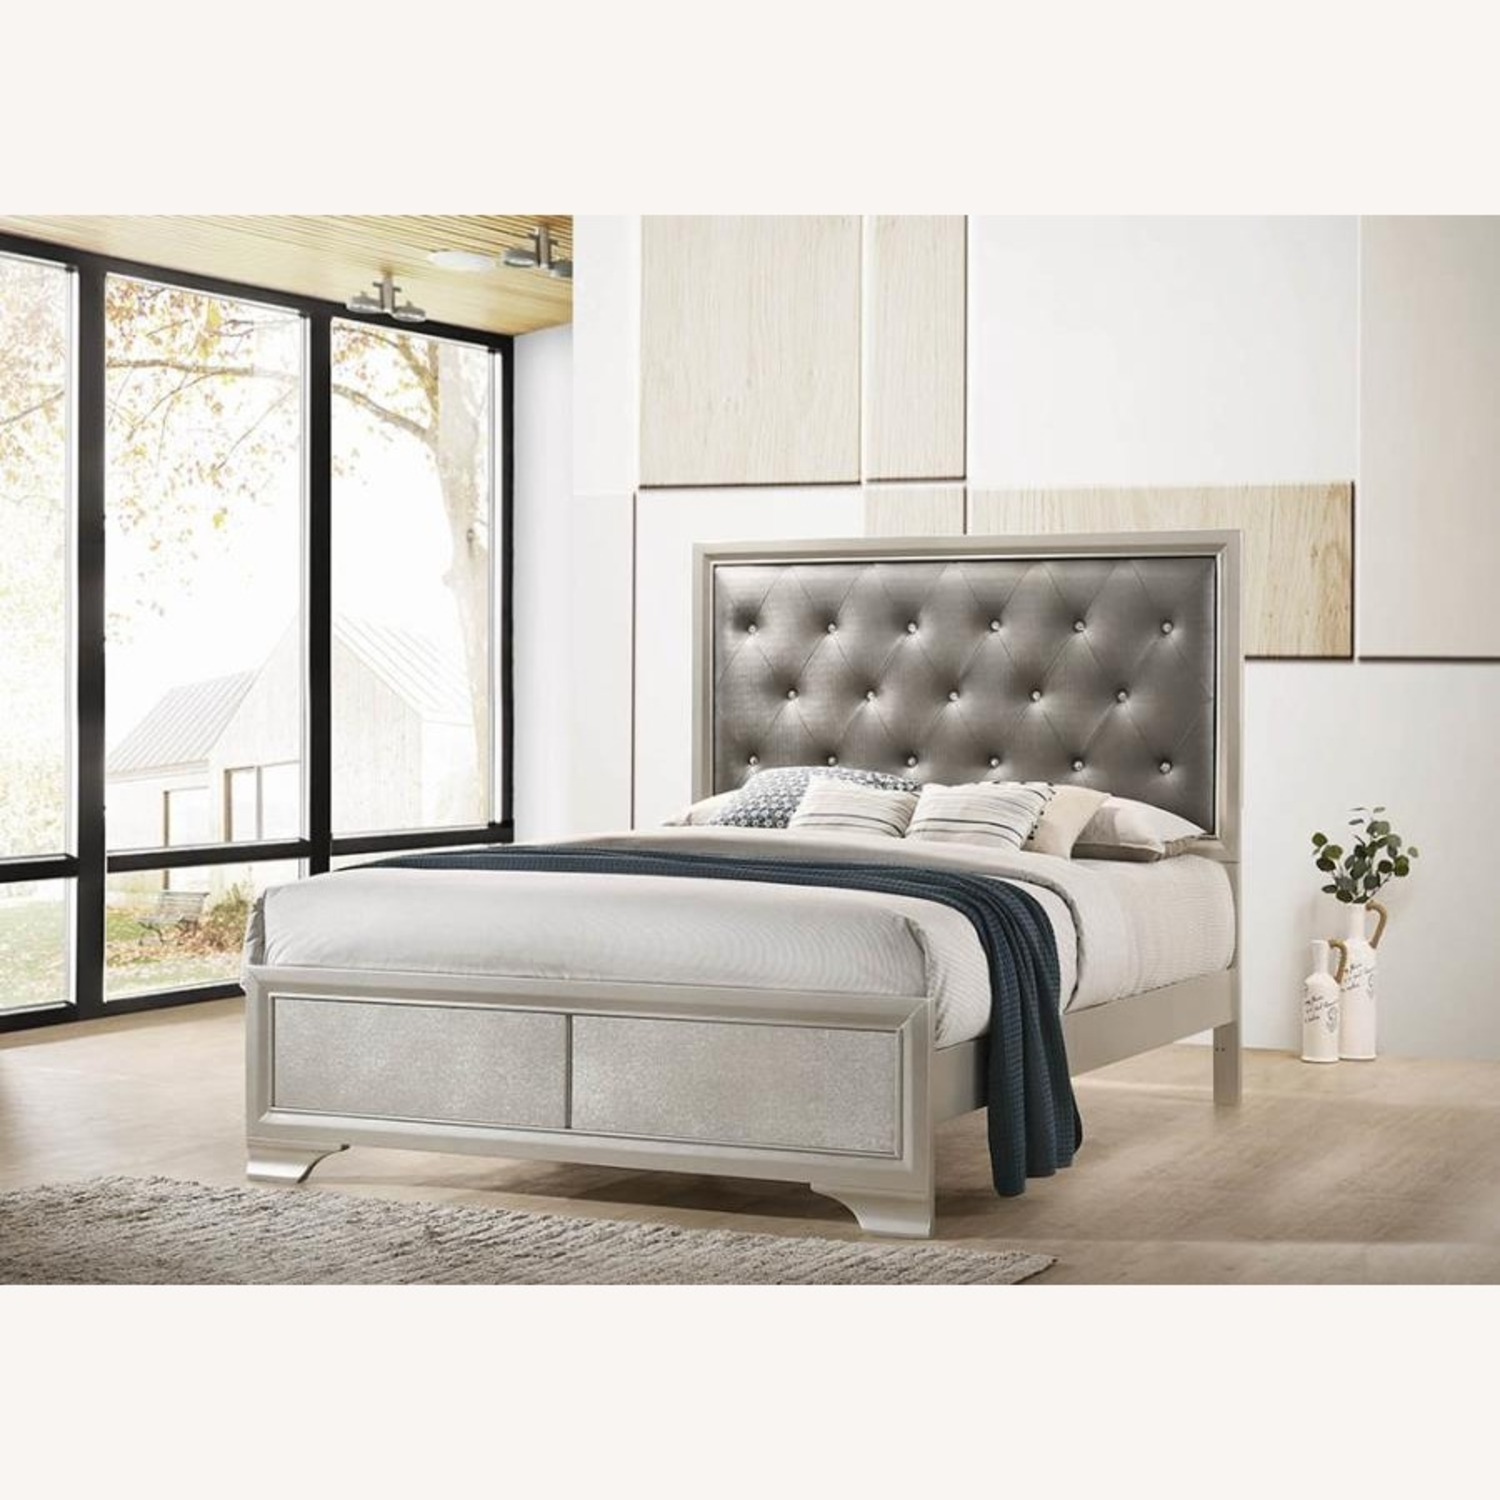 Queen Bed In Metallic Grey Leatherette Finish - image-5